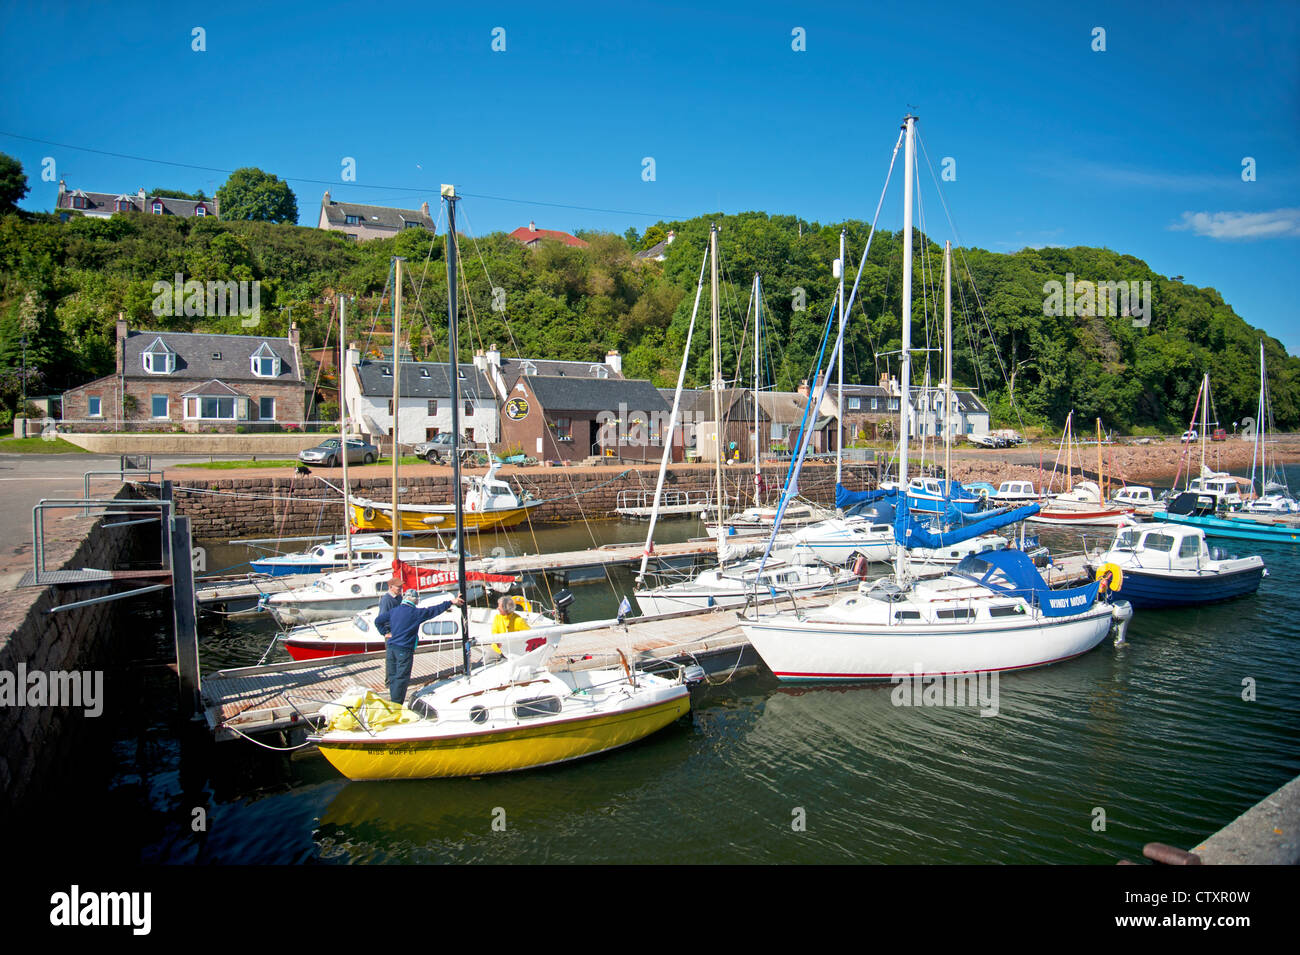 Avoch harbour on the Moray Firth offers dolphin watching boat trips.  SCO 8274 - Stock Image